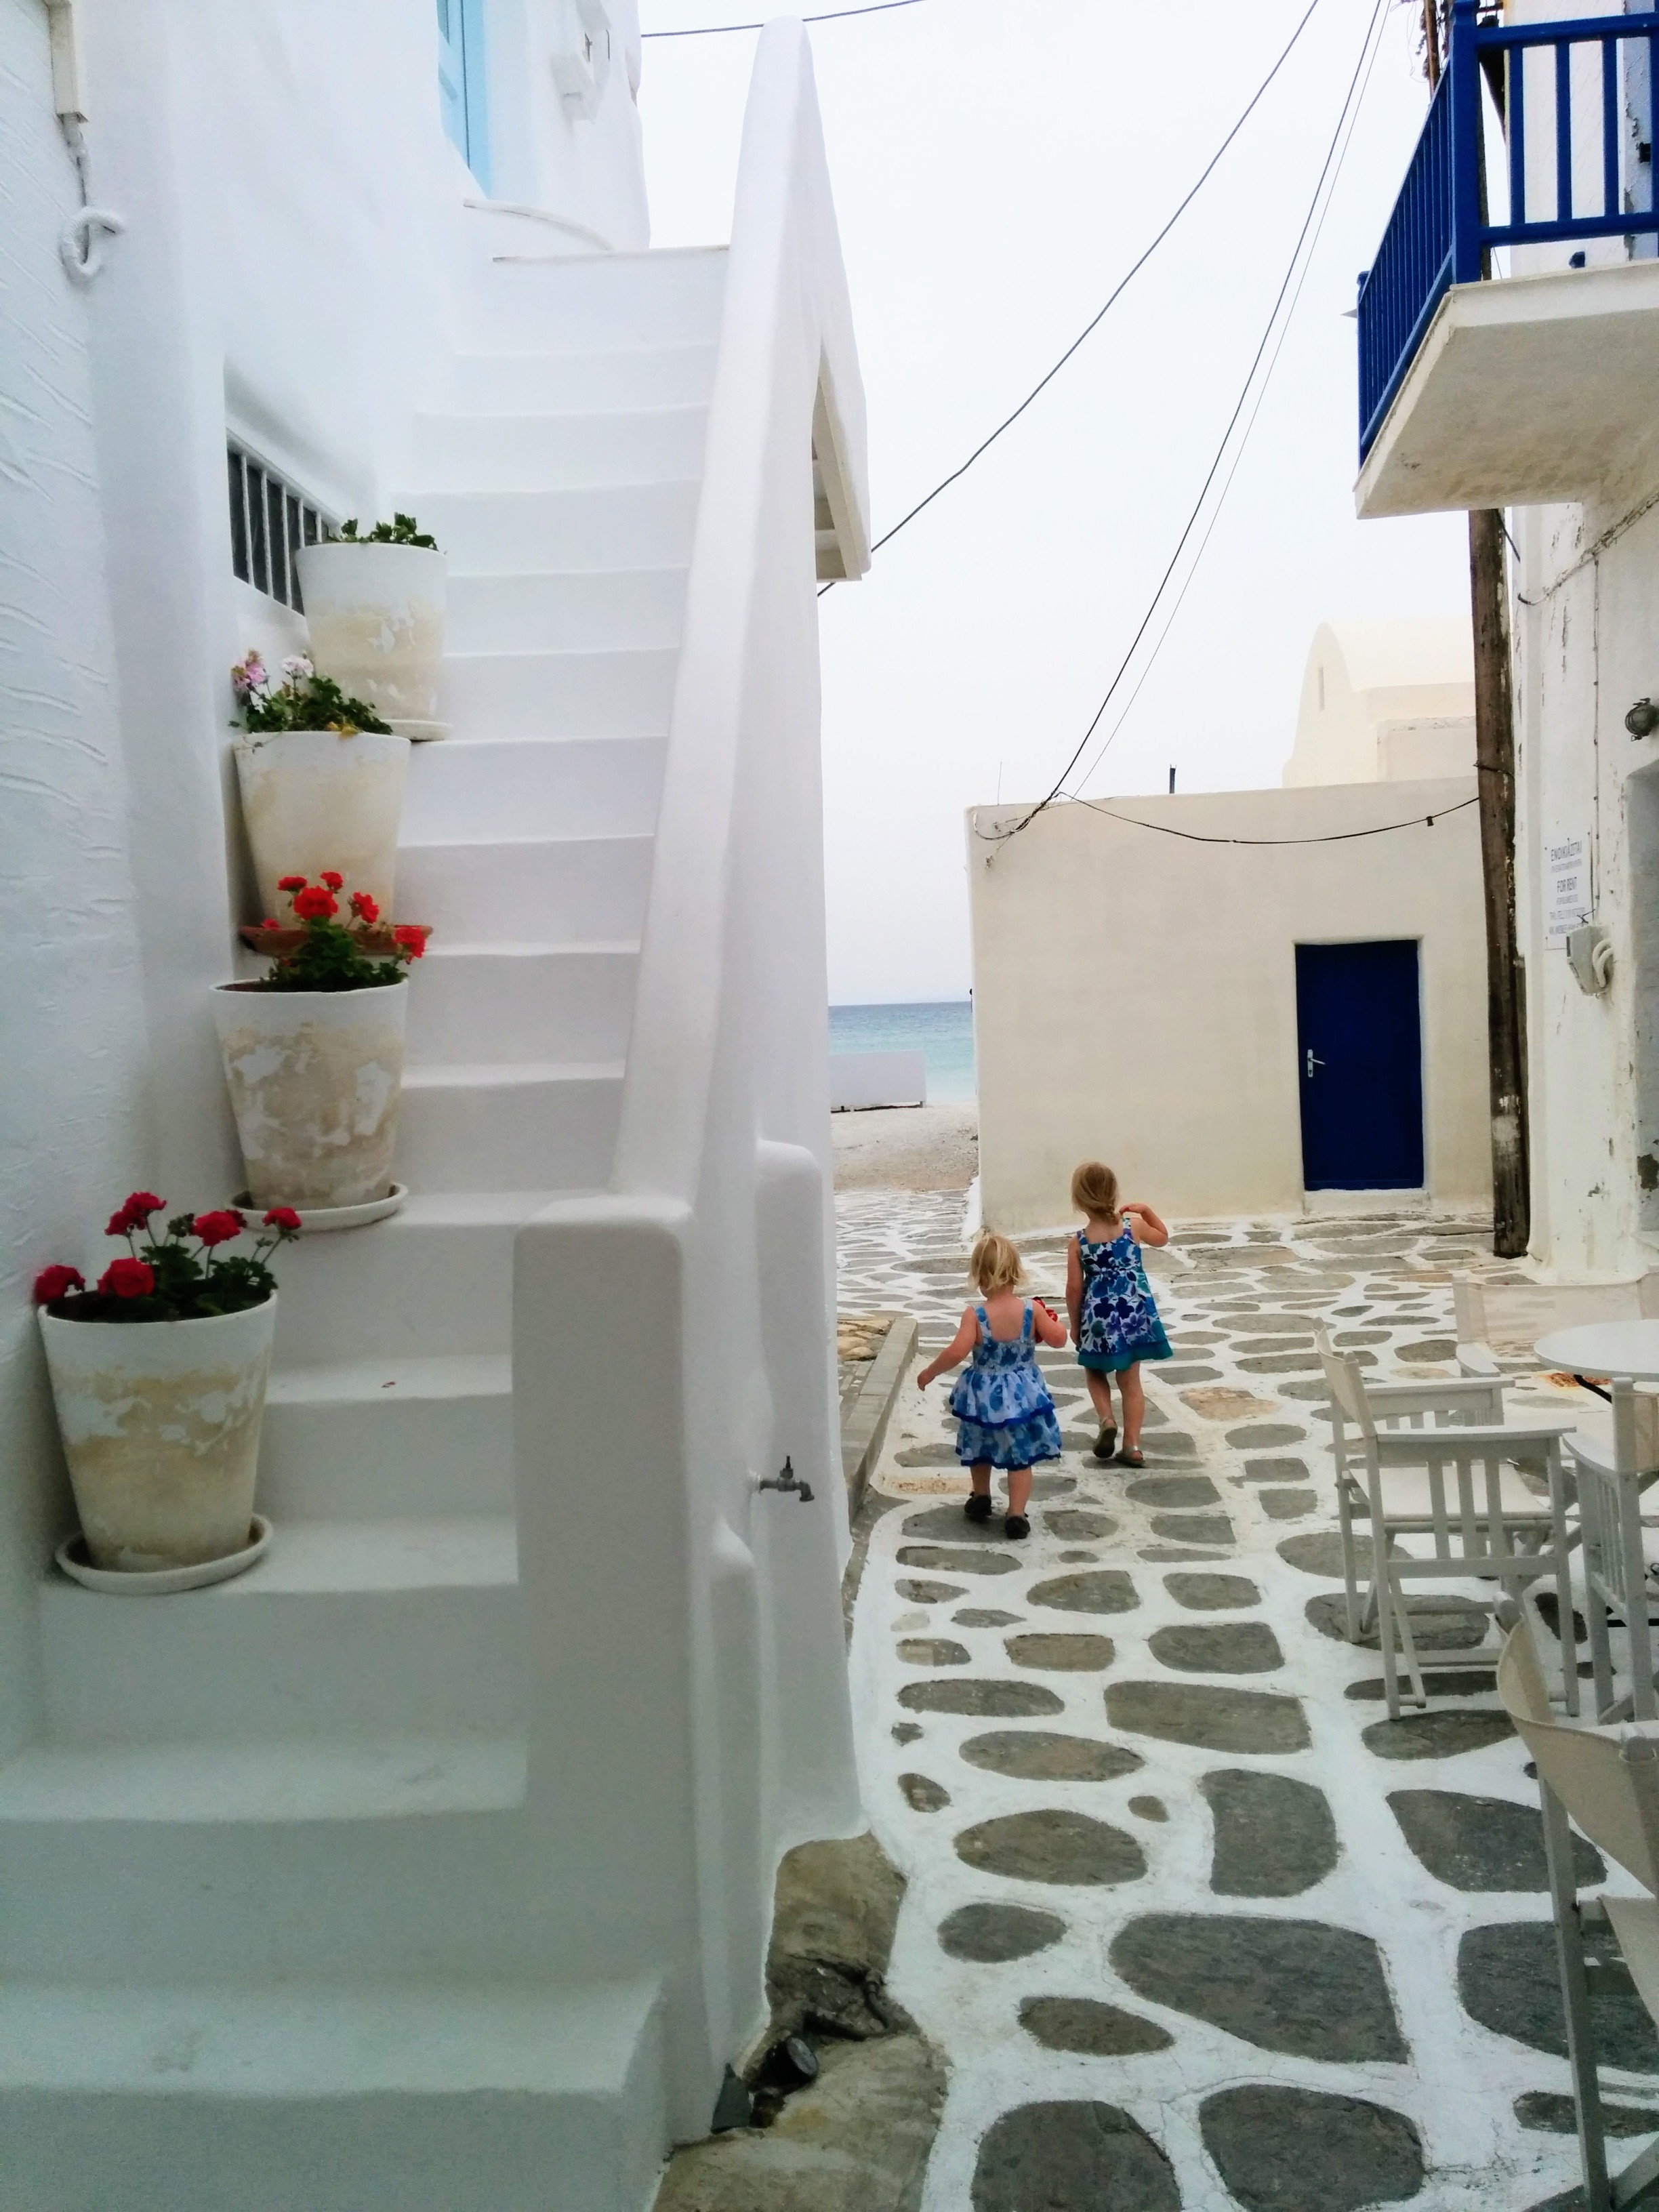 One relaxing week in Paros, Greece